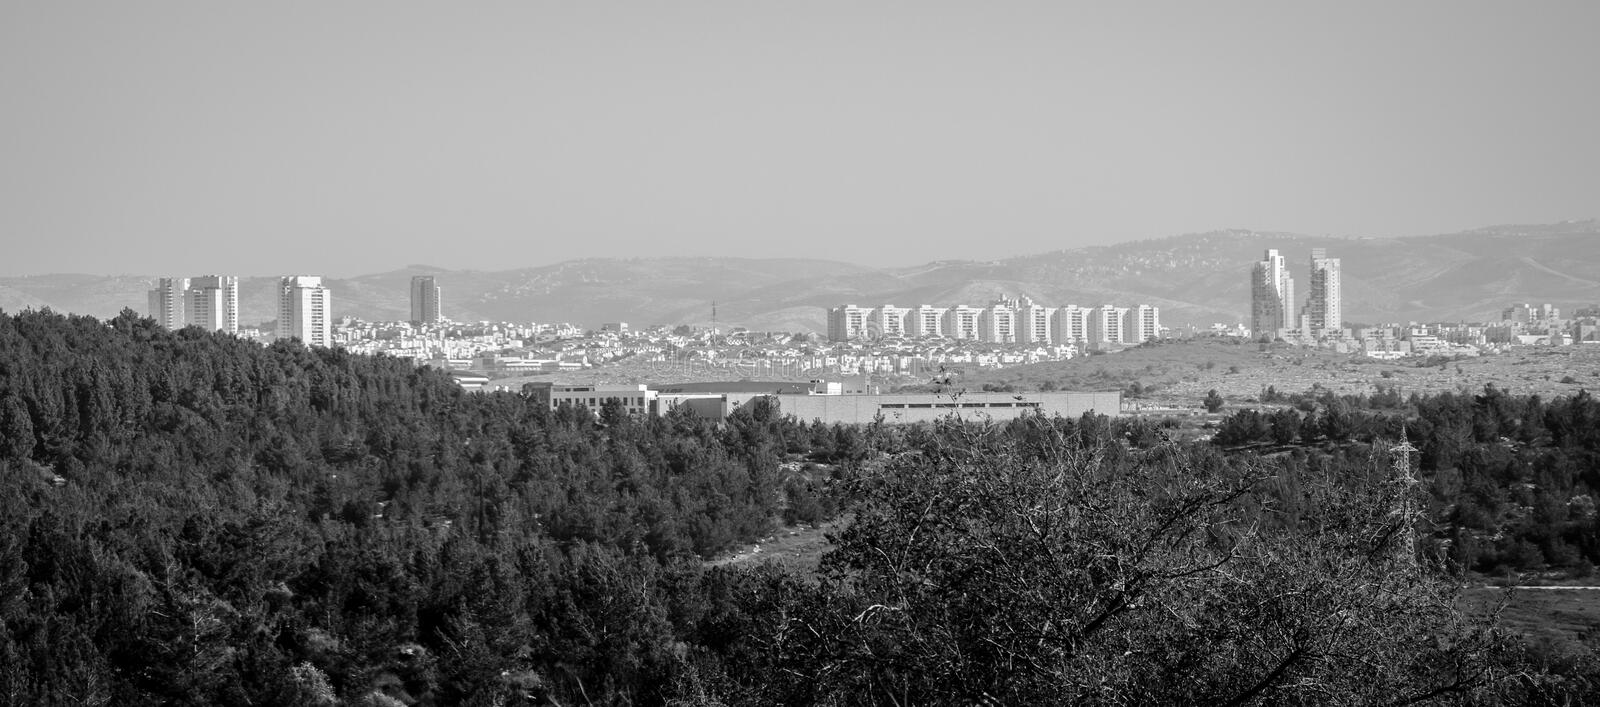 Modiin city B/W. The new city of Modiin in Israel. Black and white picture. Photo taken on: Jan, 2015 stock photo